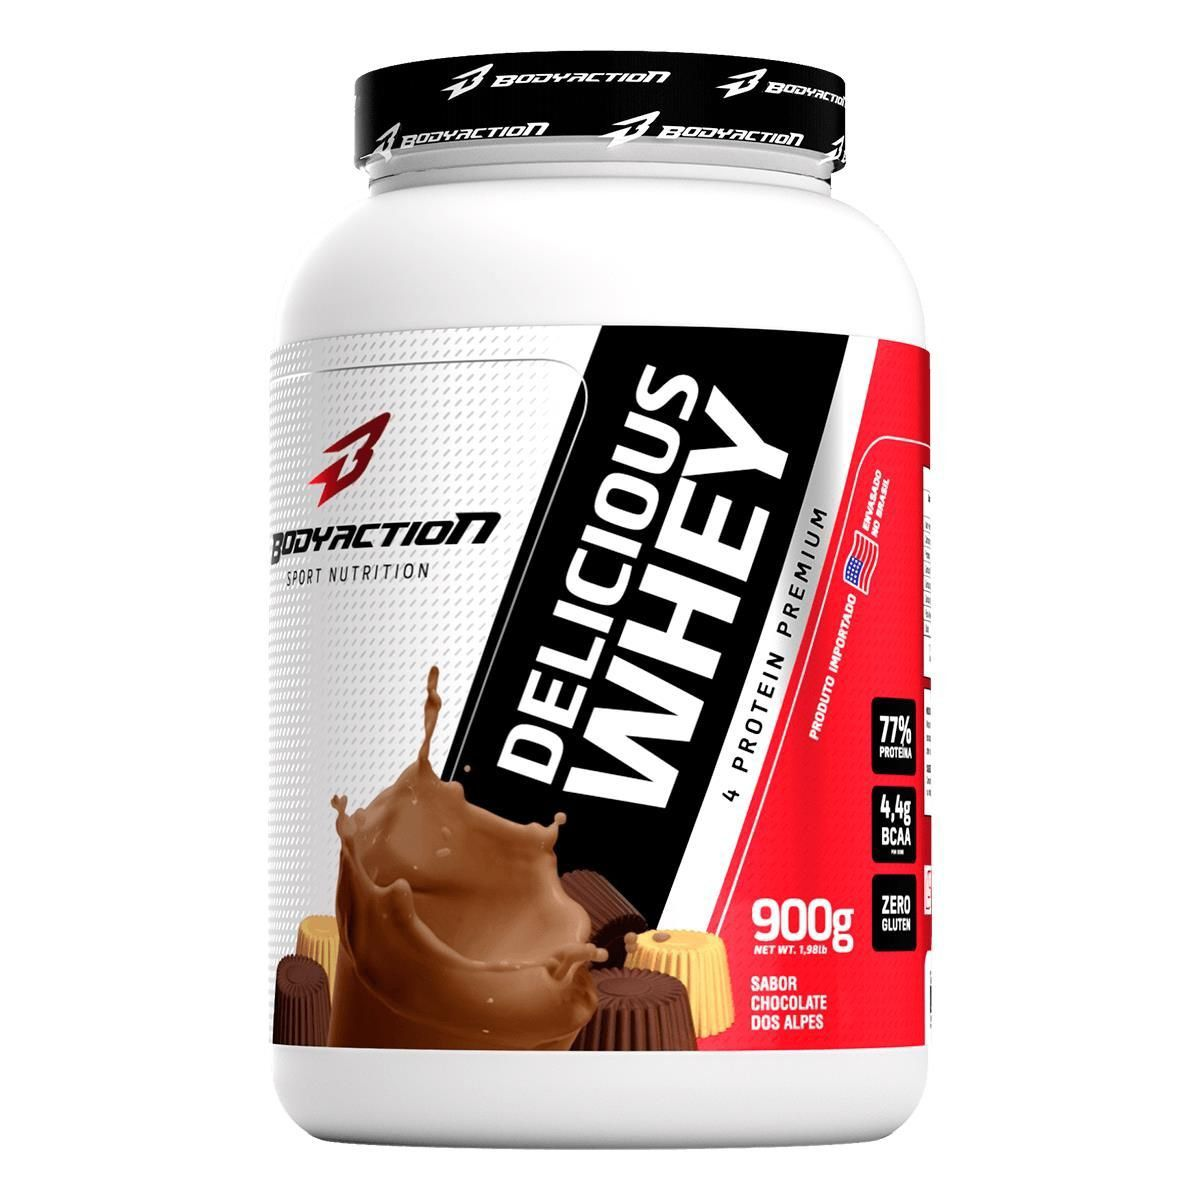 Proteina Whey Protein Delicious Whey Isolada 900g BodyAction